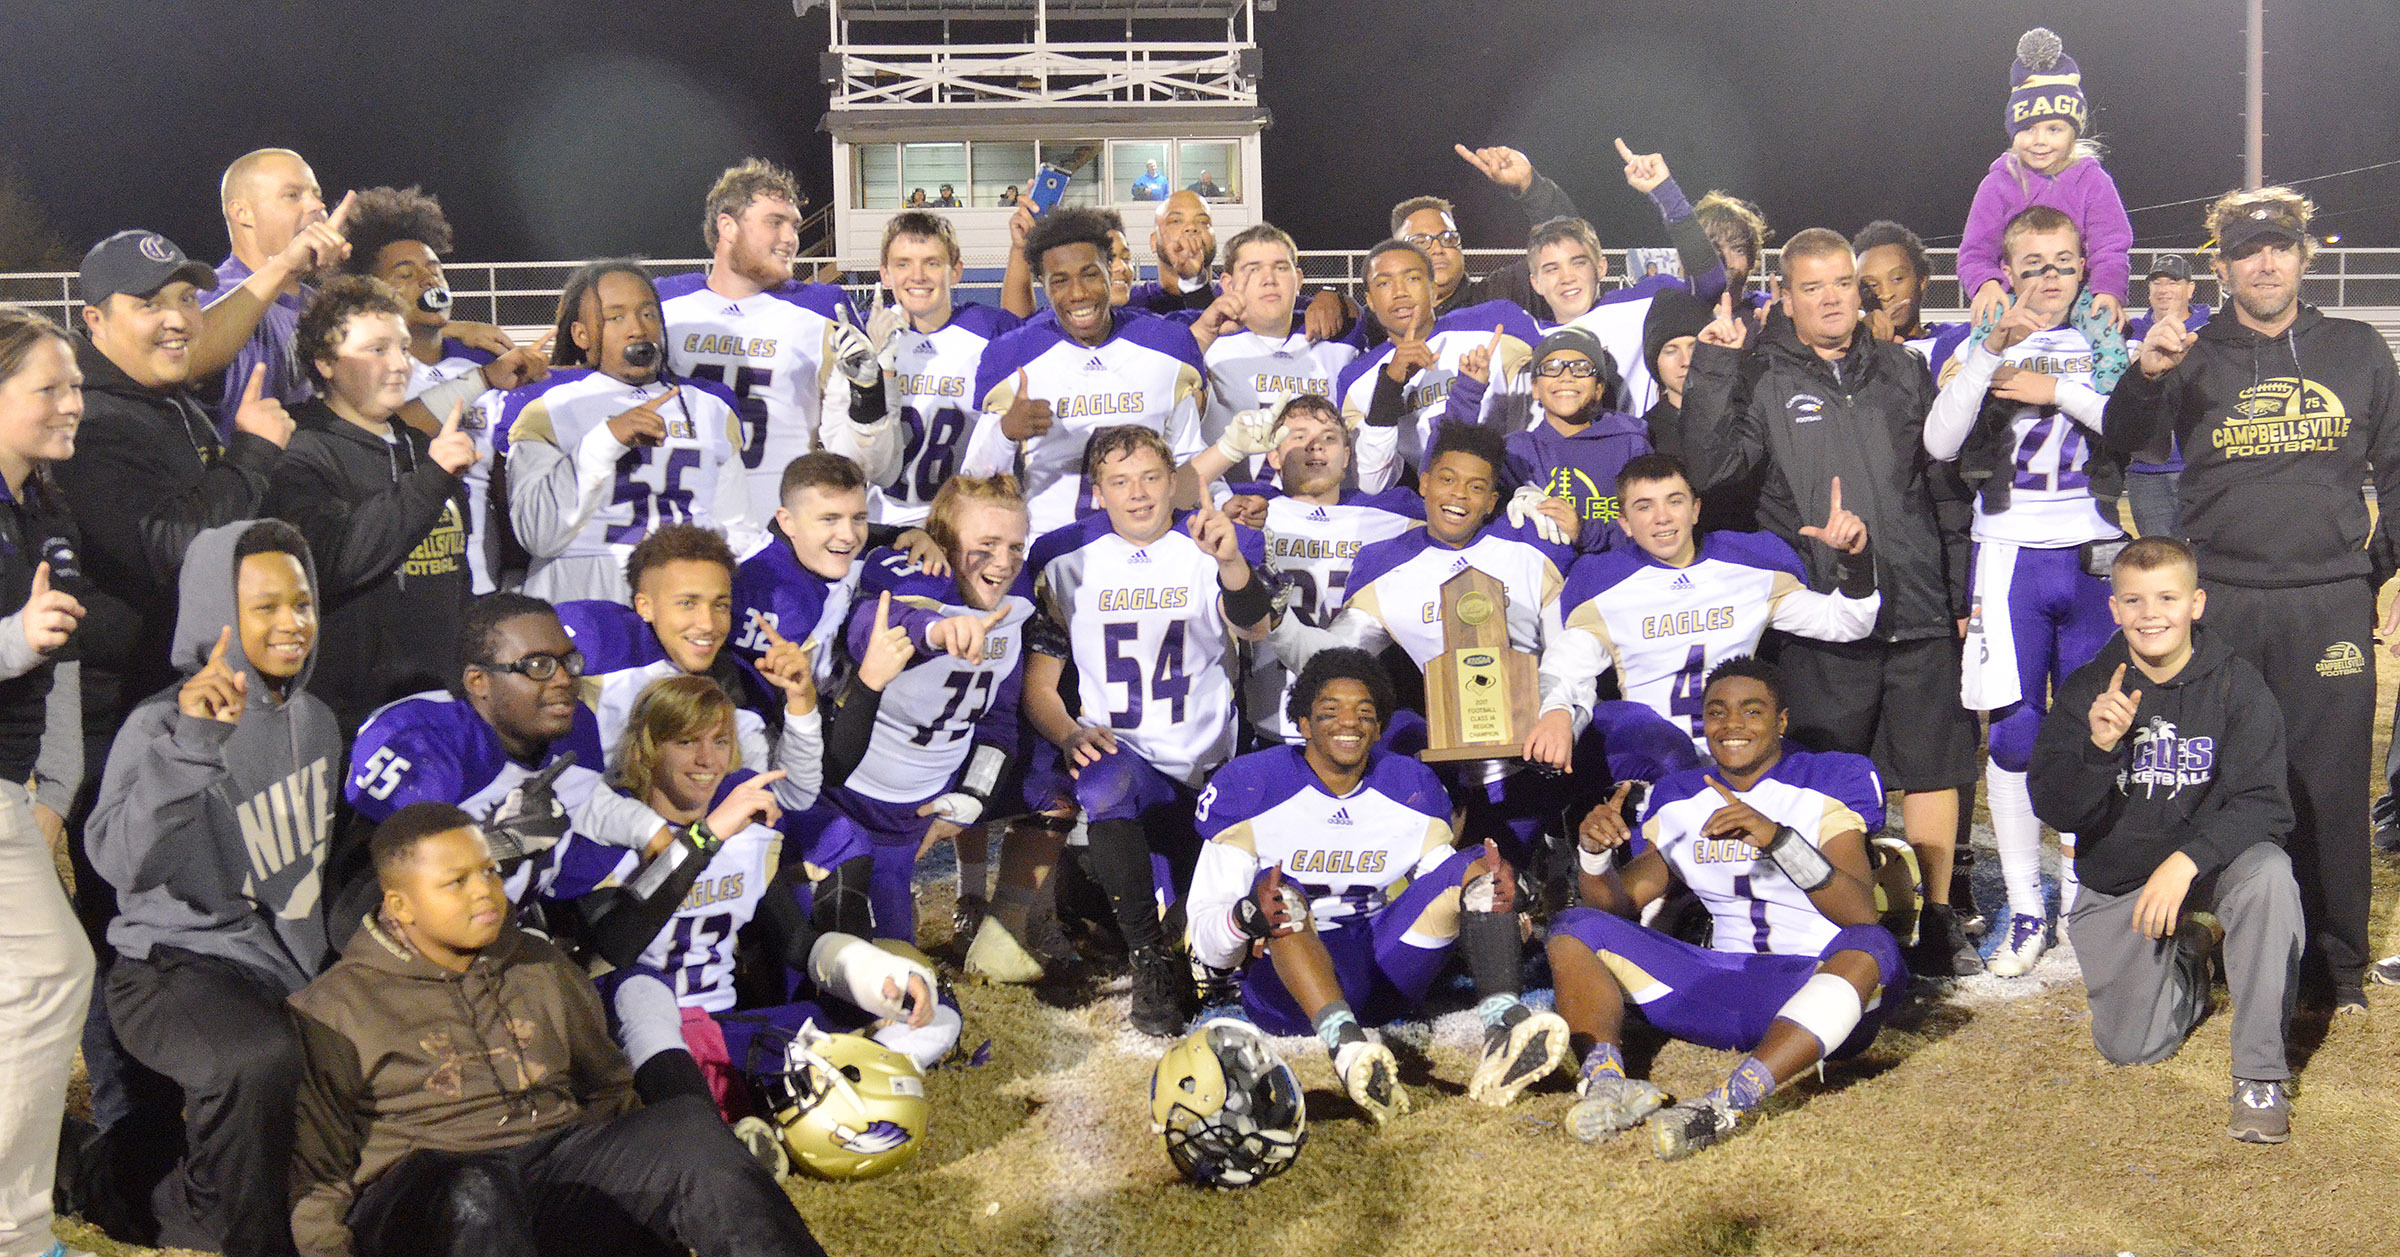 CHS football players and coaches pose for a photo with their region championship trophy.